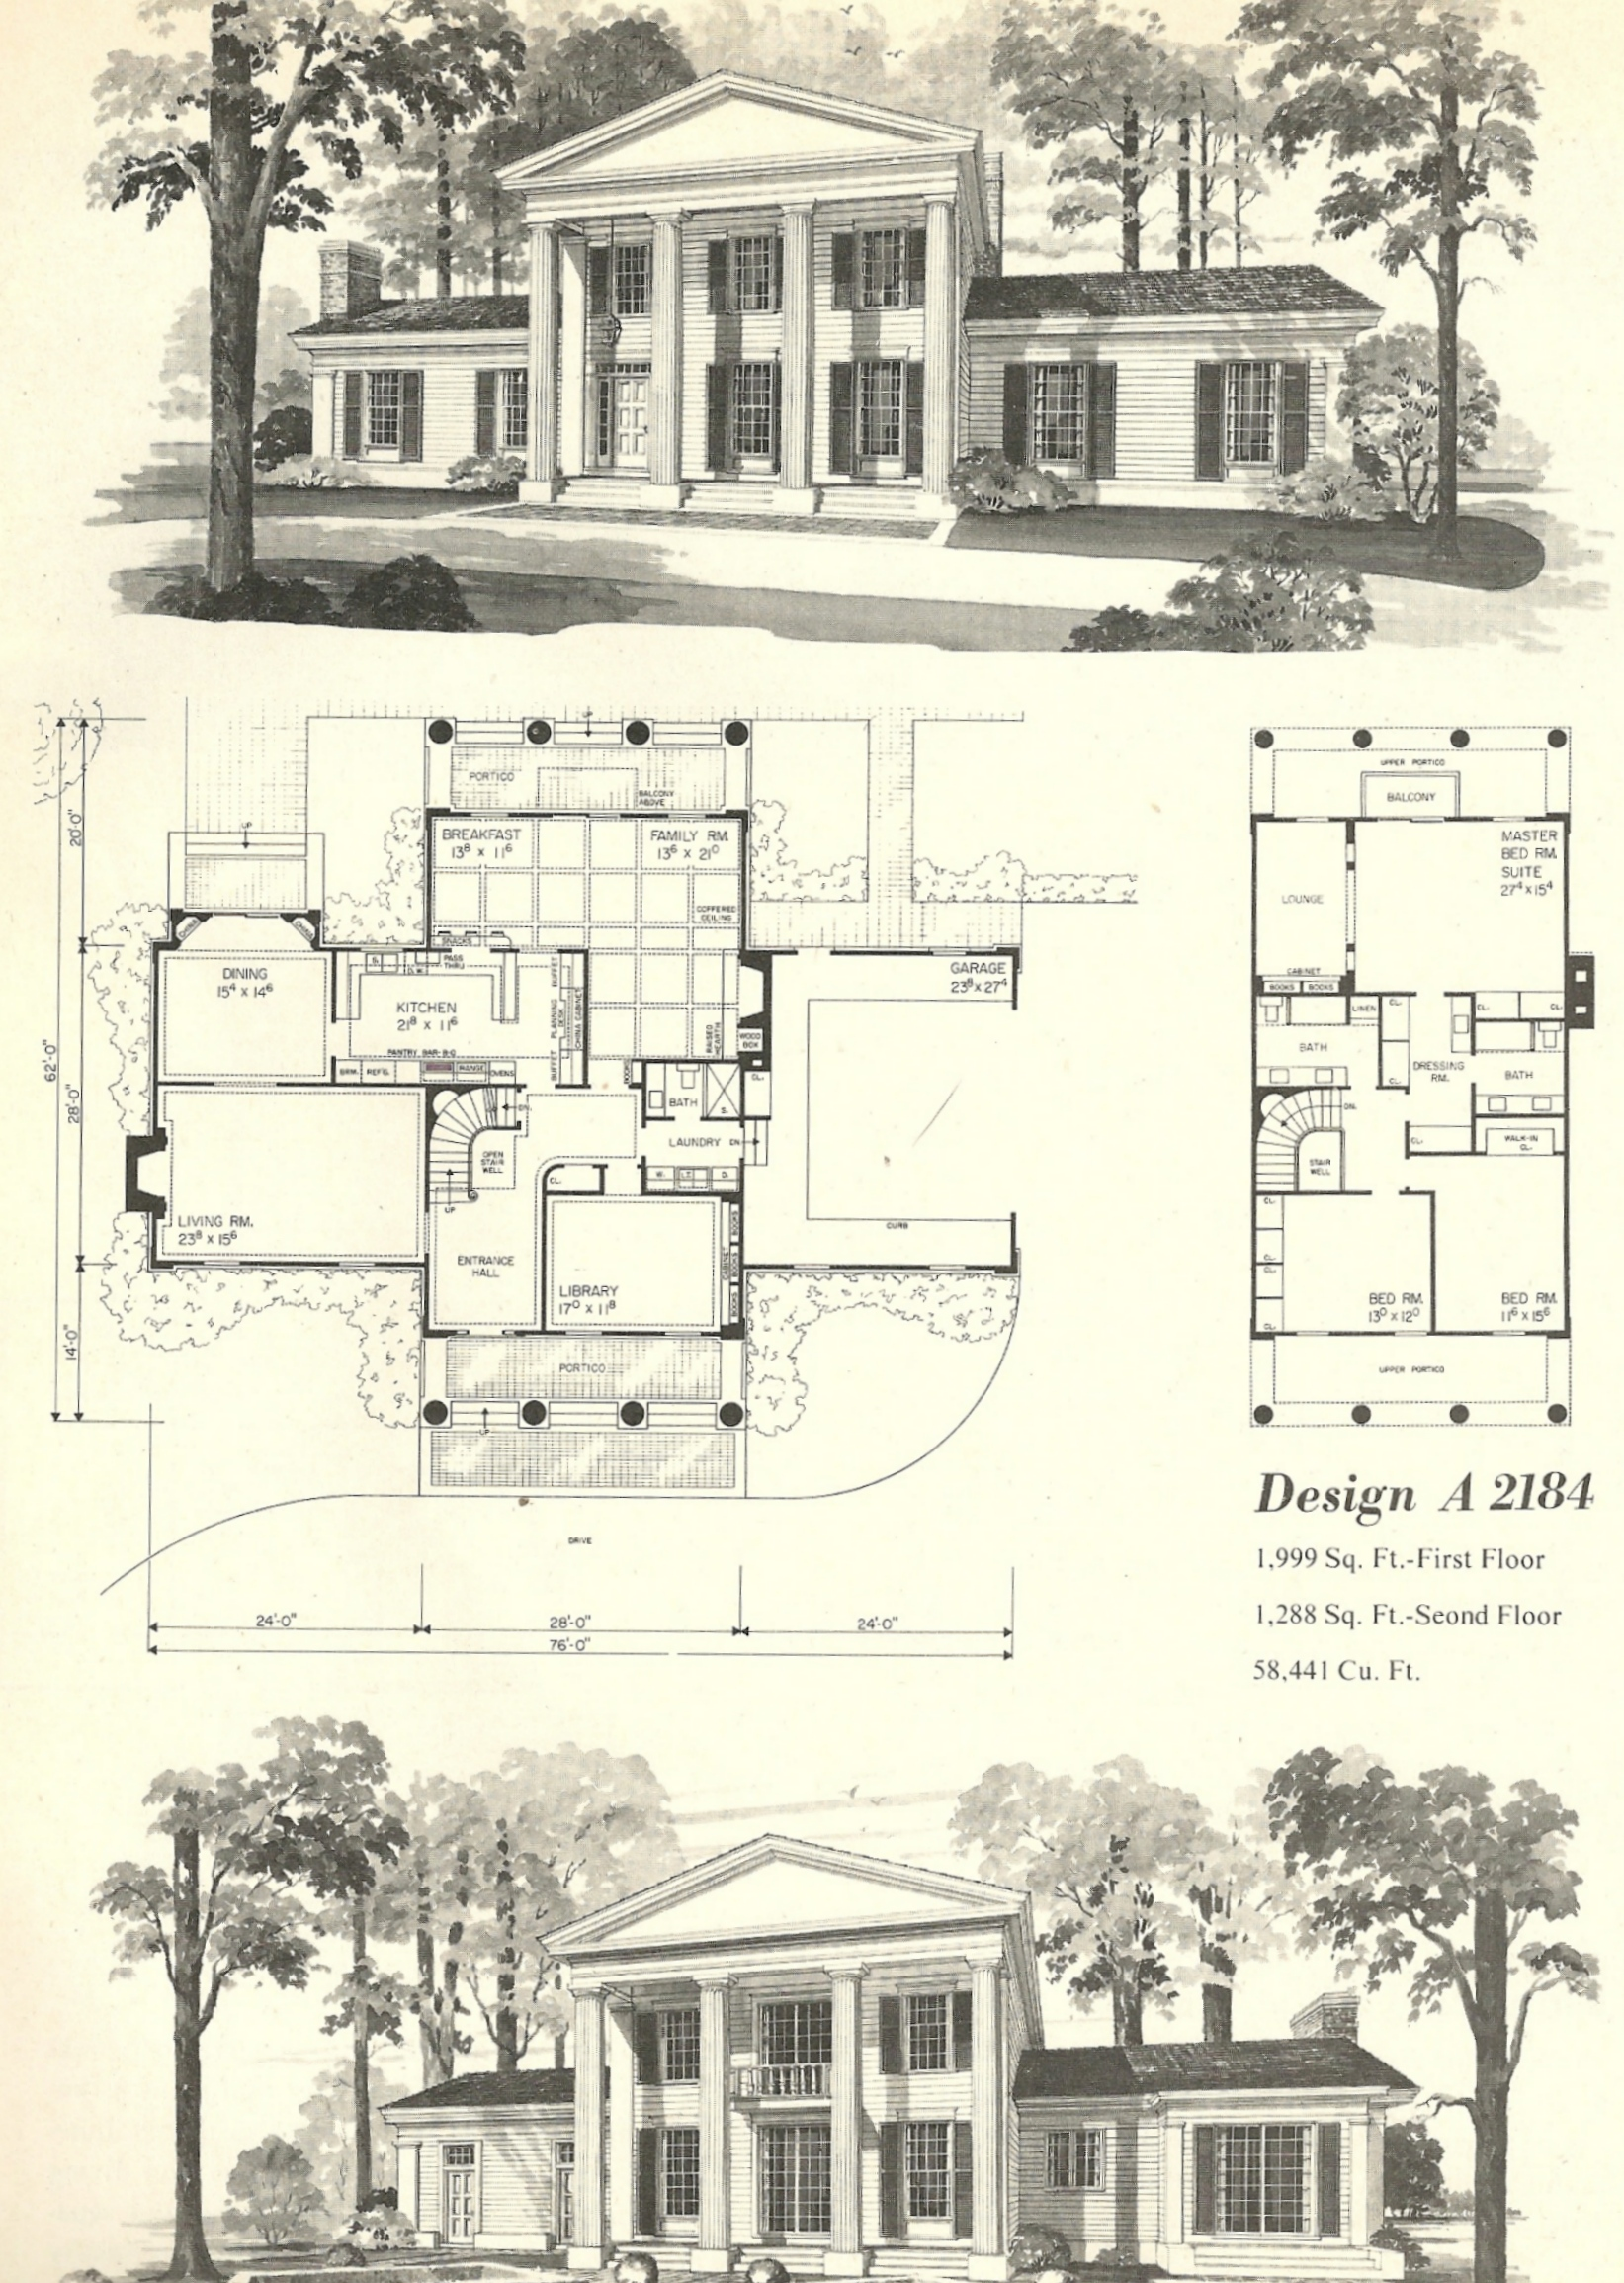 Vintage house plans 1970s early american southern for 1970 home designs